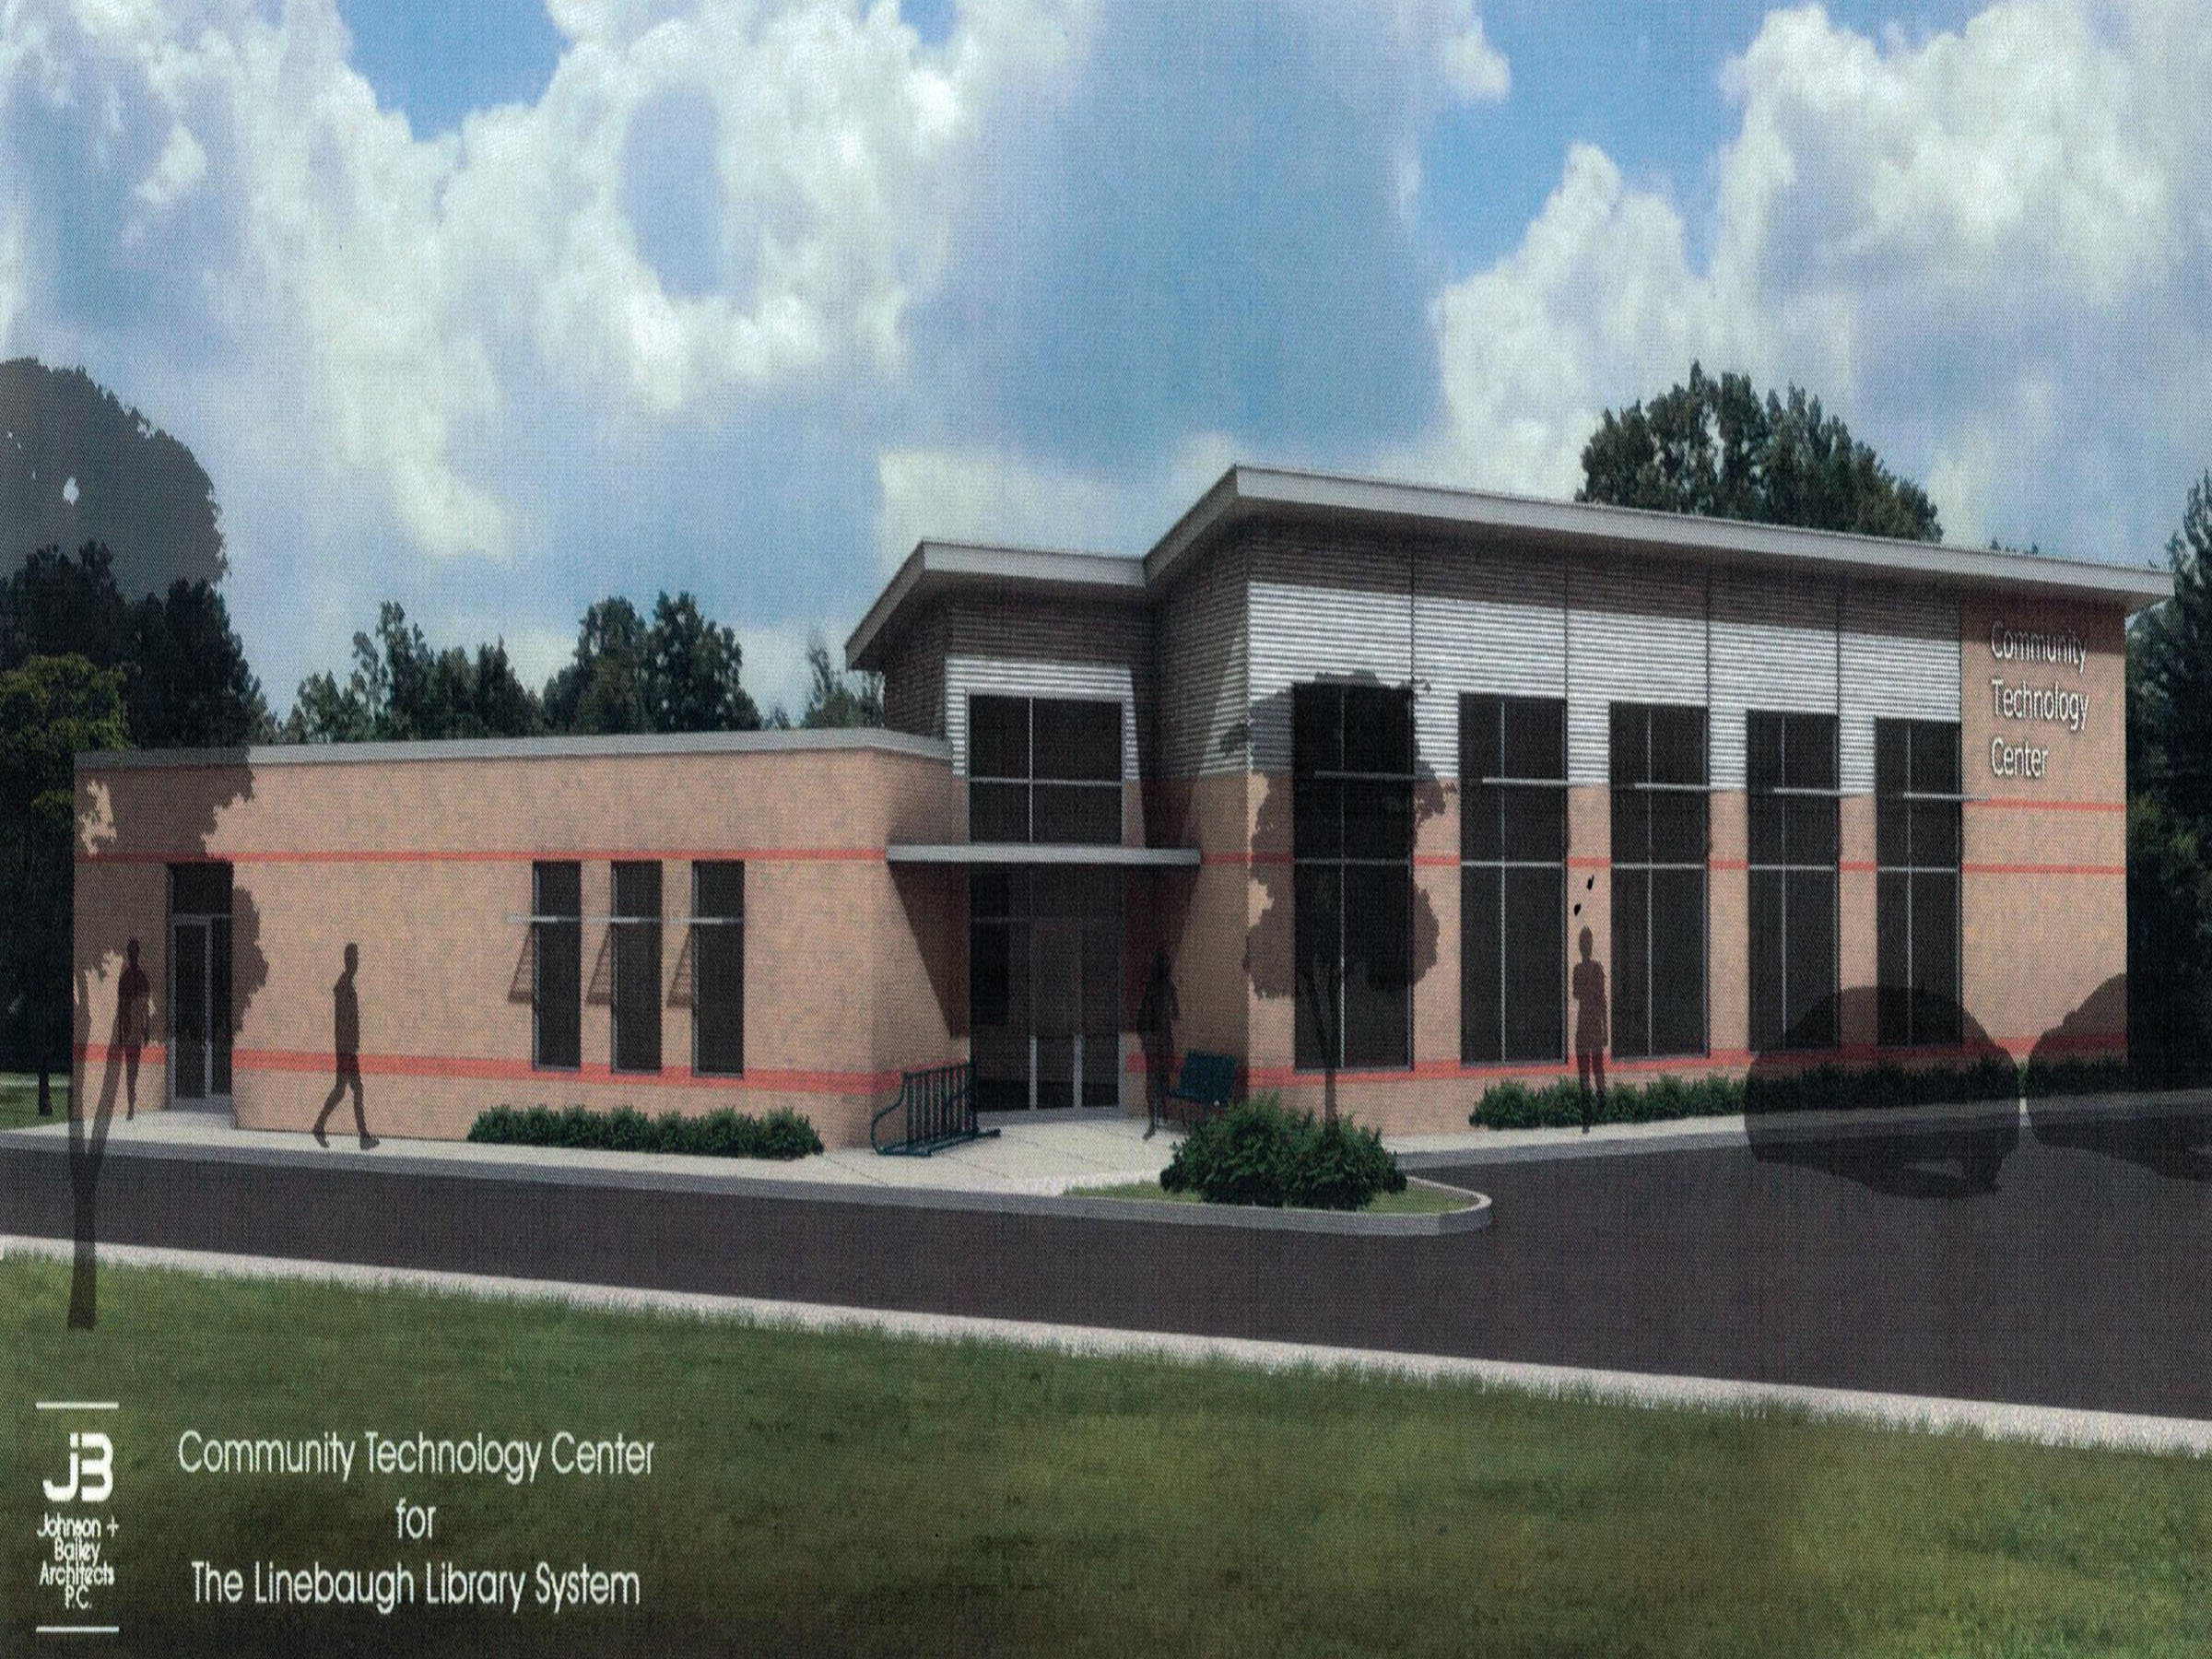 Murfreesboro Council OK's $400,000 funding request for Community Technology Center